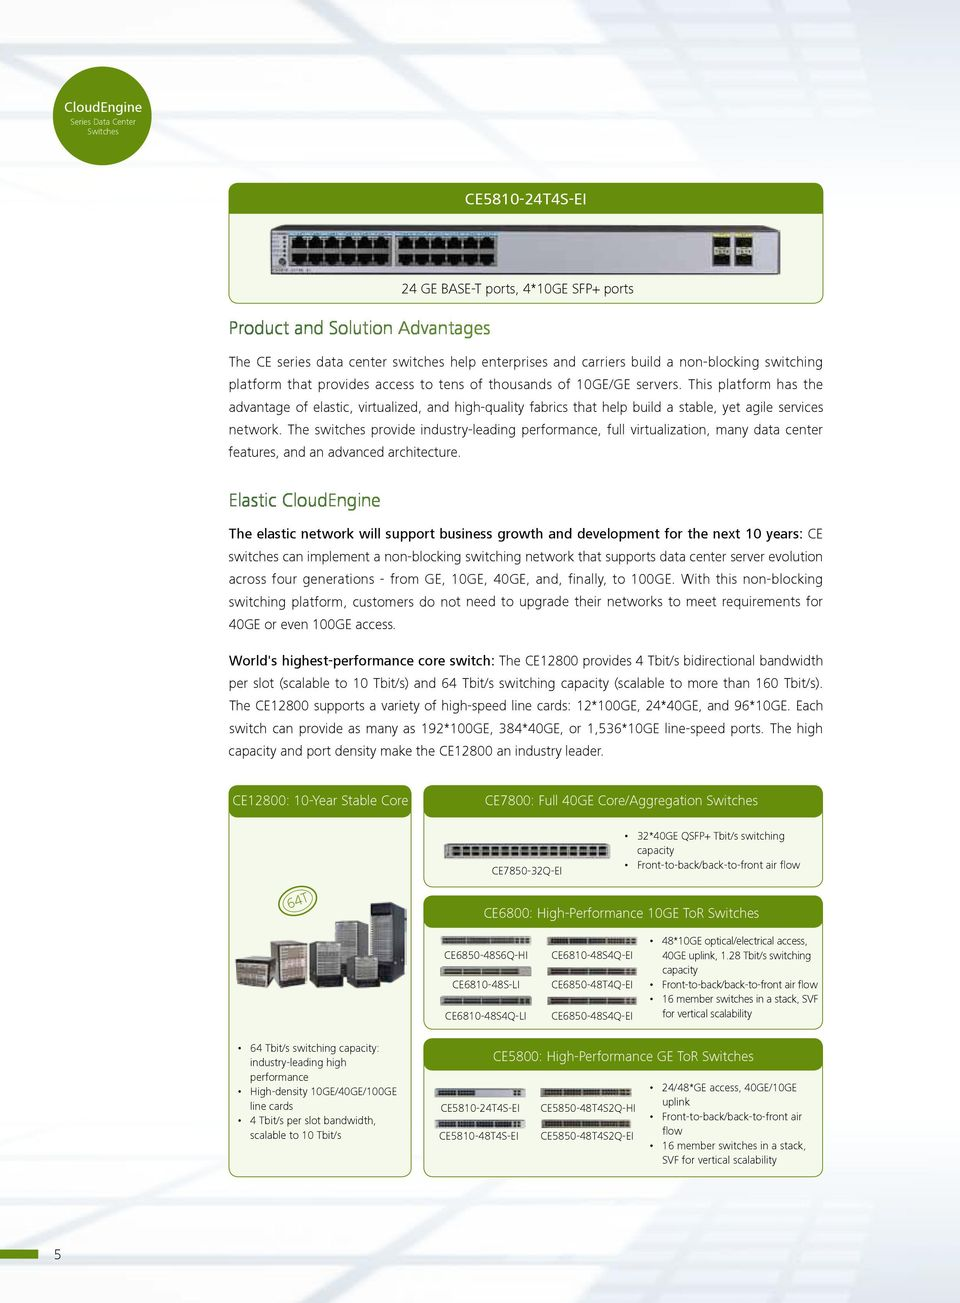 The switches provide industry-leading performance, full virtualization, many data center features, and an advanced architecture.